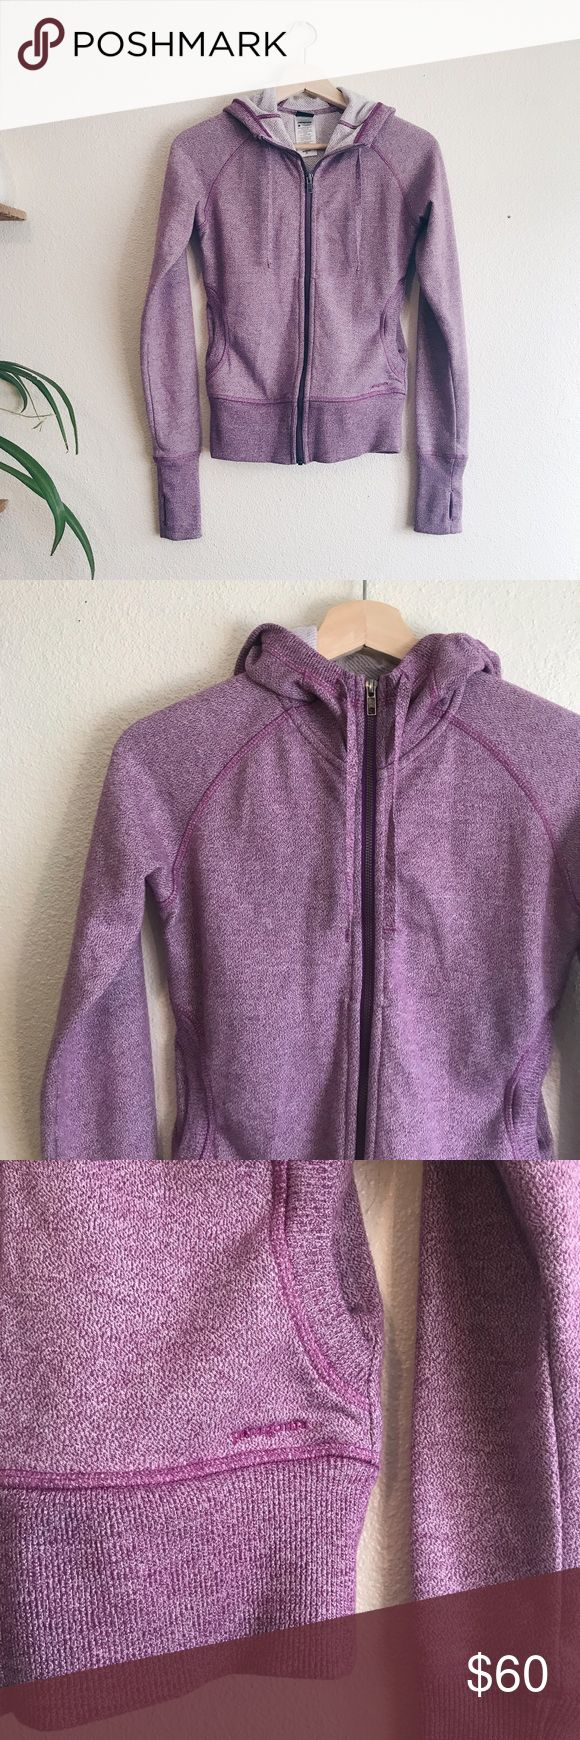 Patagonia purple zip up hoodie Excellent condition! Super cute. I'm a small for reference in the tryons and it's a bit too fitted. Best for XS, as tagged. Has thumb holes. Patagonia Sweaters Crew & Scoop Necks